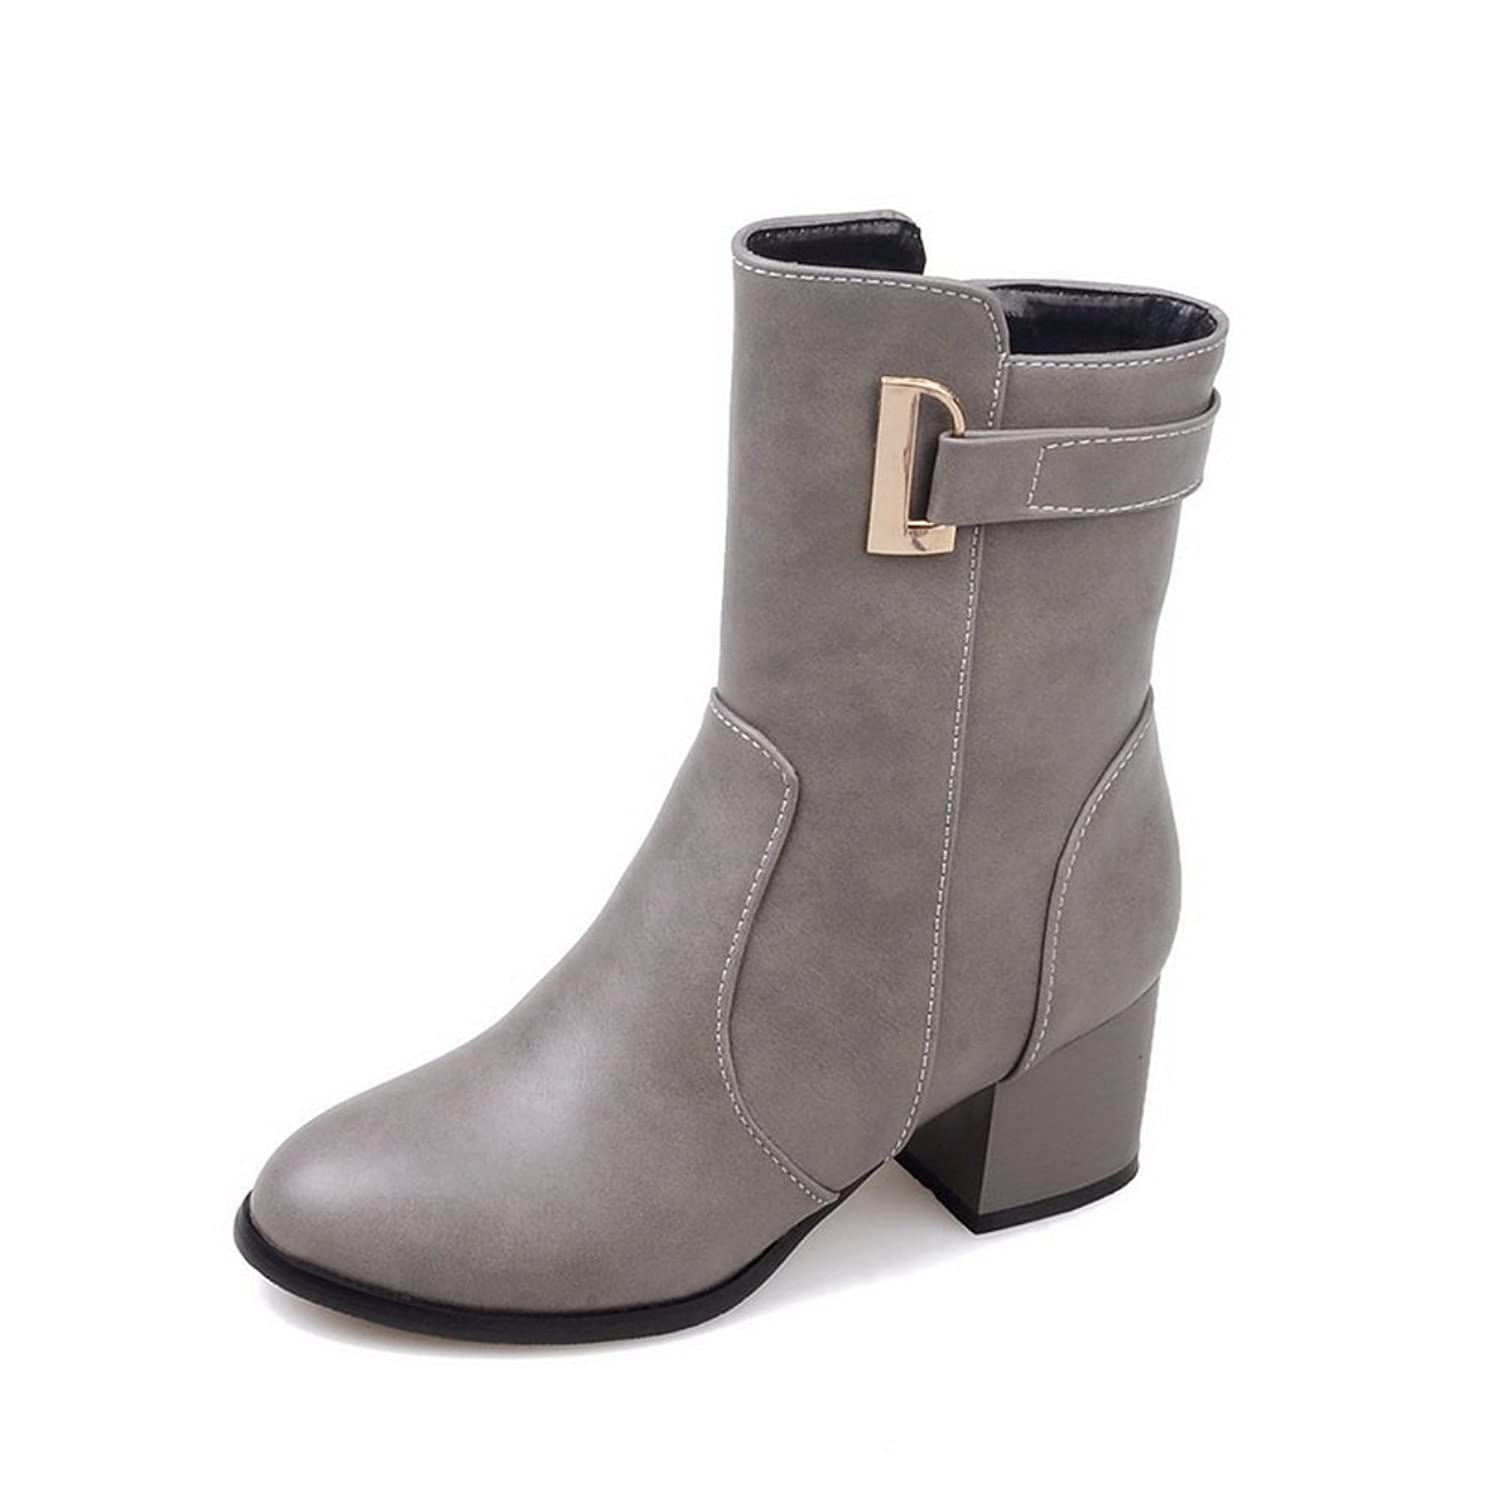 1TO9 Ladies Buckle Romanesque Style Fashion Riding Boots Imitated Leather Boots